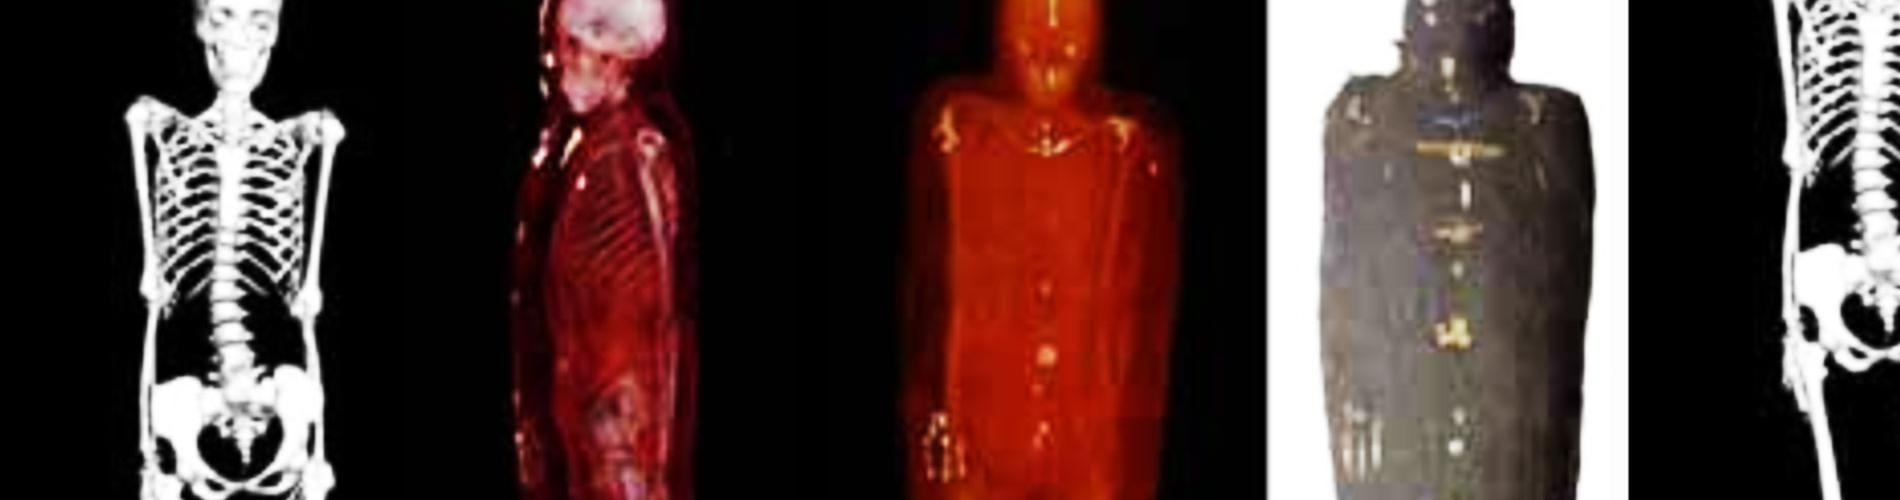 Digital biomedical imaging reveals the Rhind mummy's skeleton.